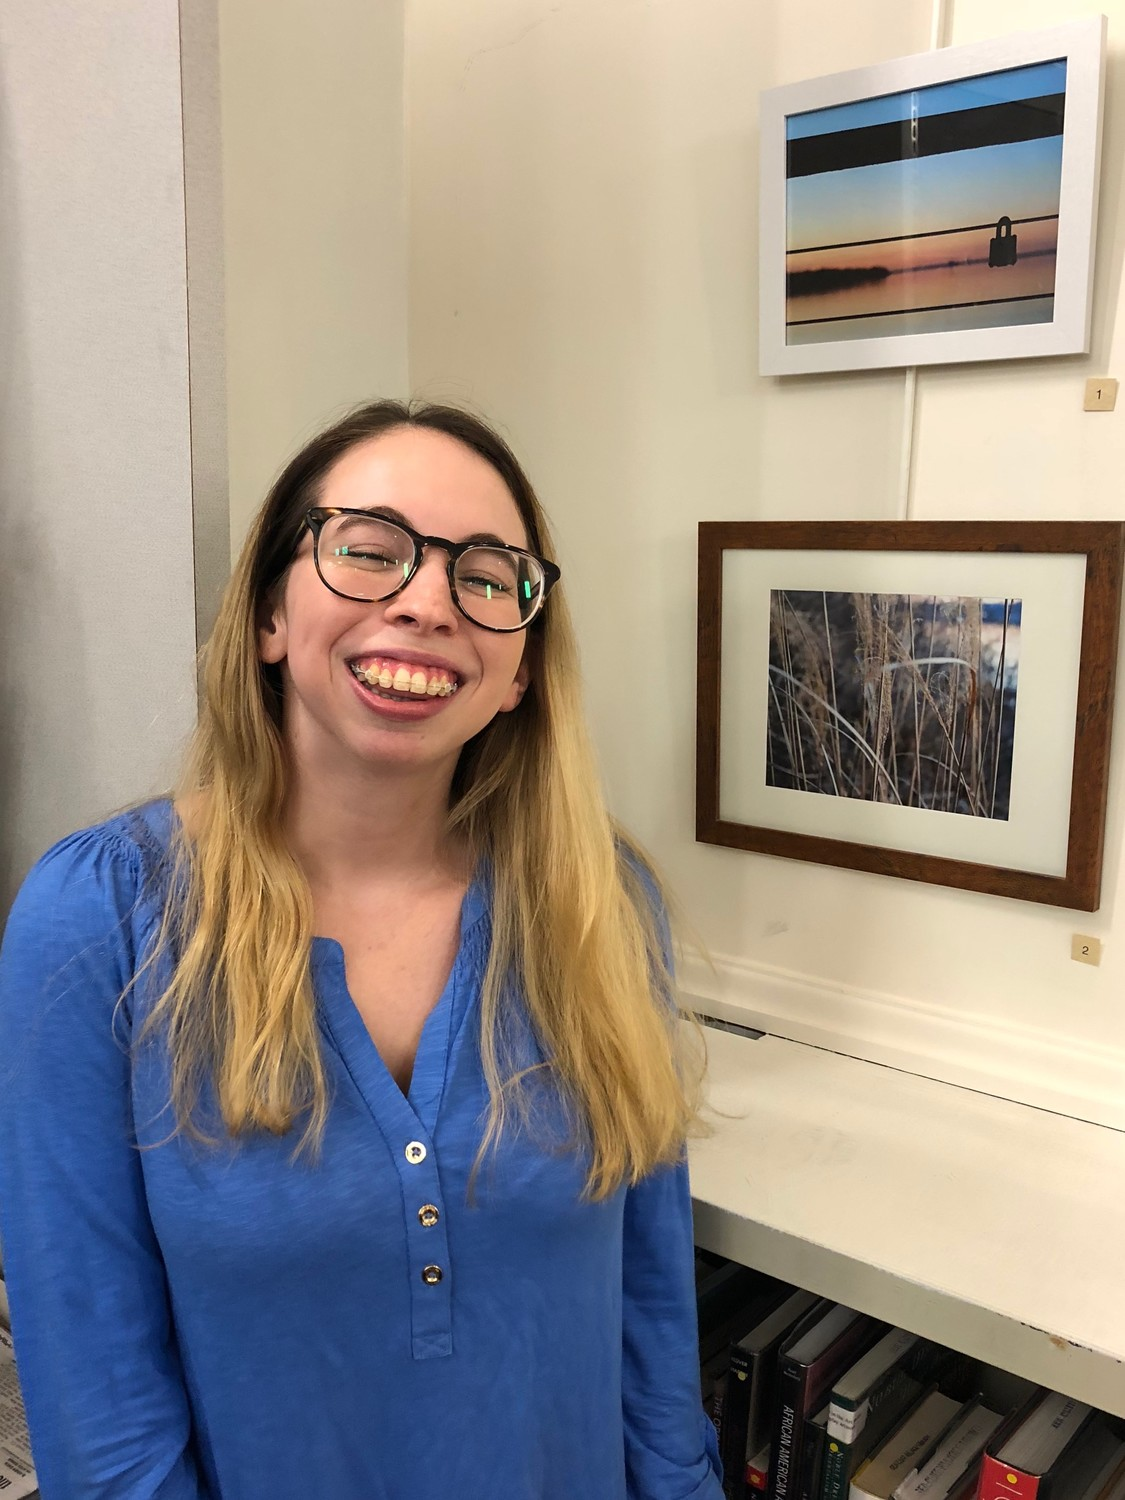 Sydney Goldman showcased her   photography for the first time. Her pieces depict Sea Cliff's boardwalk from different perspectives.